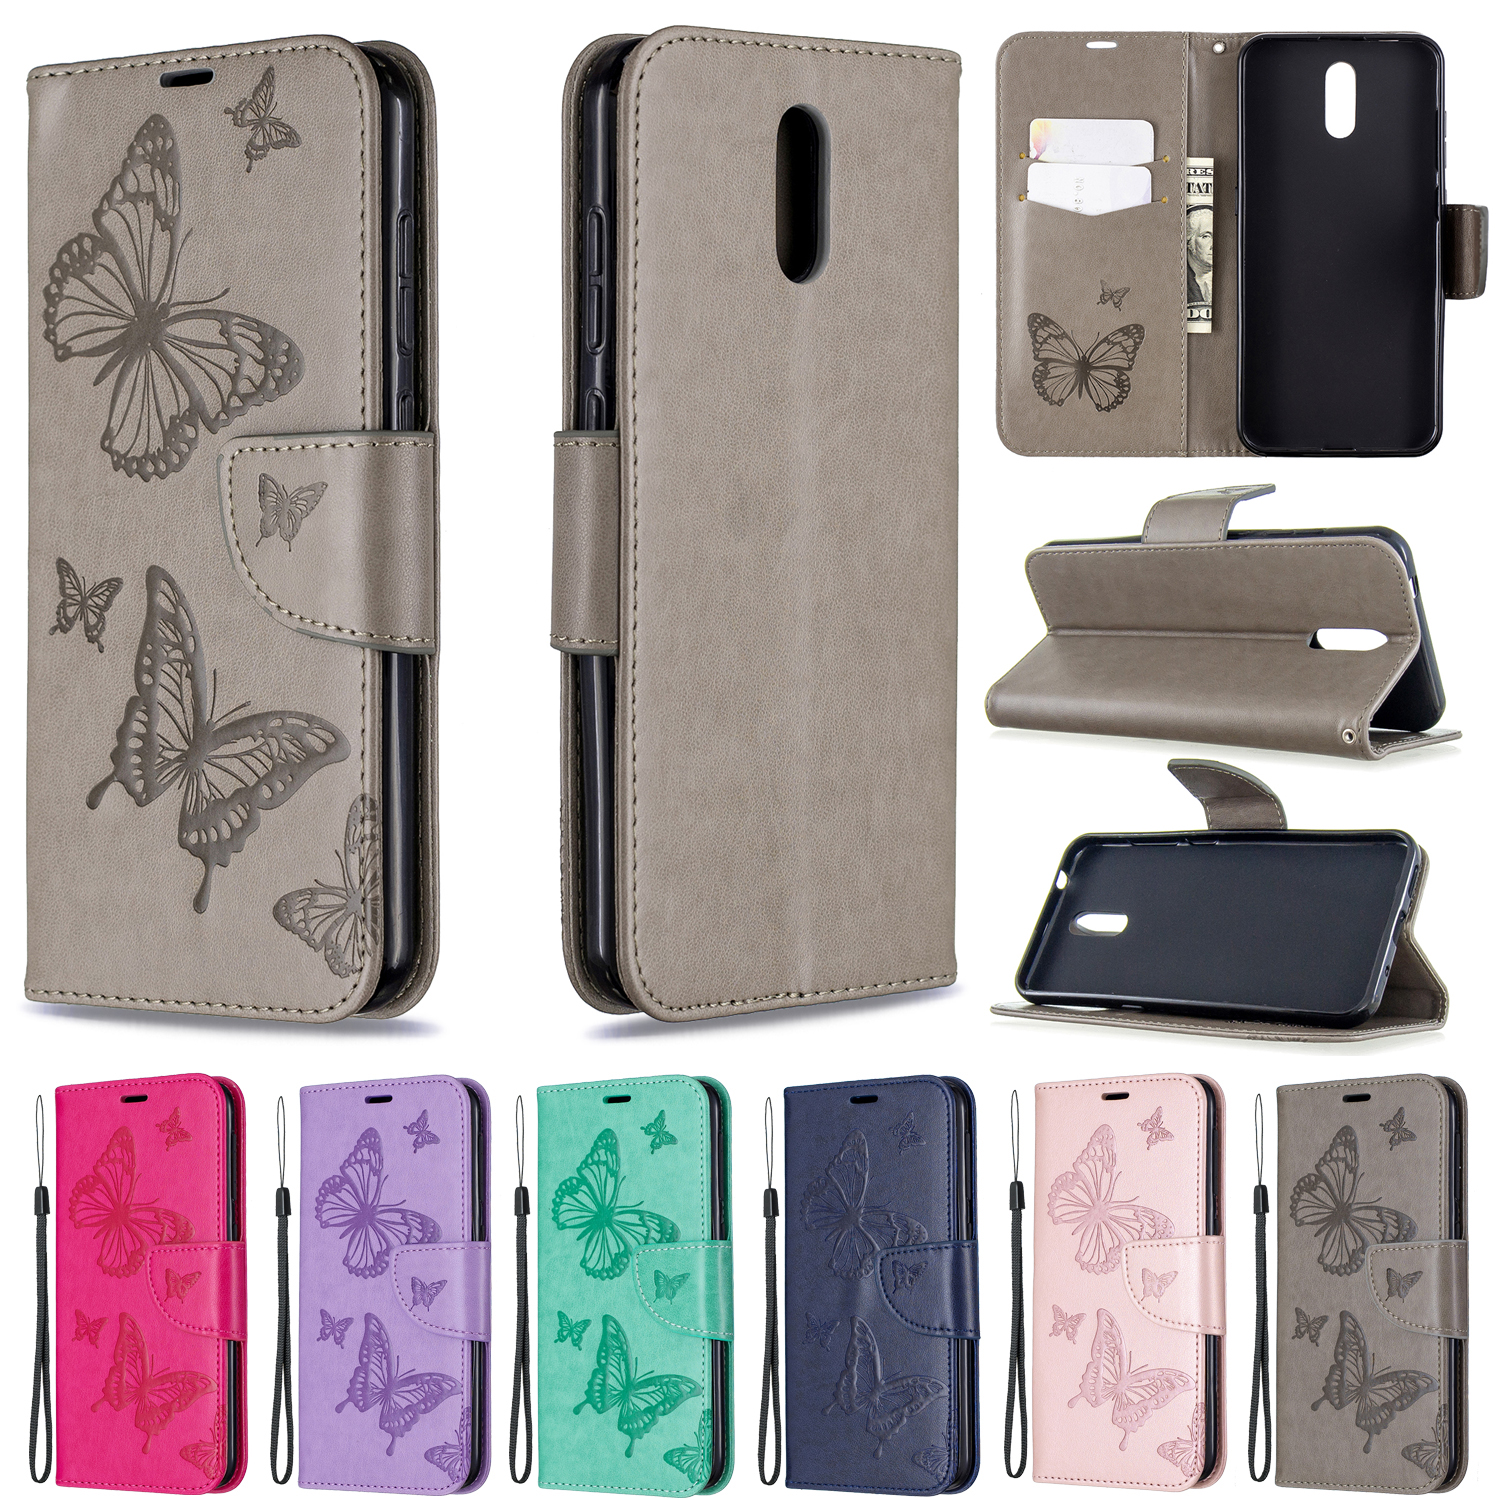 Embossing Butterfly Flip <font><b>Phone</b></font> <font><b>Case</b></font> For <font><b>Nokia</b></font> 2.3 /6.2 /7.2 /2.2 /3.2 /4.2 /<font><b>5.1</b></font> /3.1 Leather Wallet <font><b>Case</b></font> For <font><b>NOKIA</b></font> 1Plus <font><b>Case</b></font> image